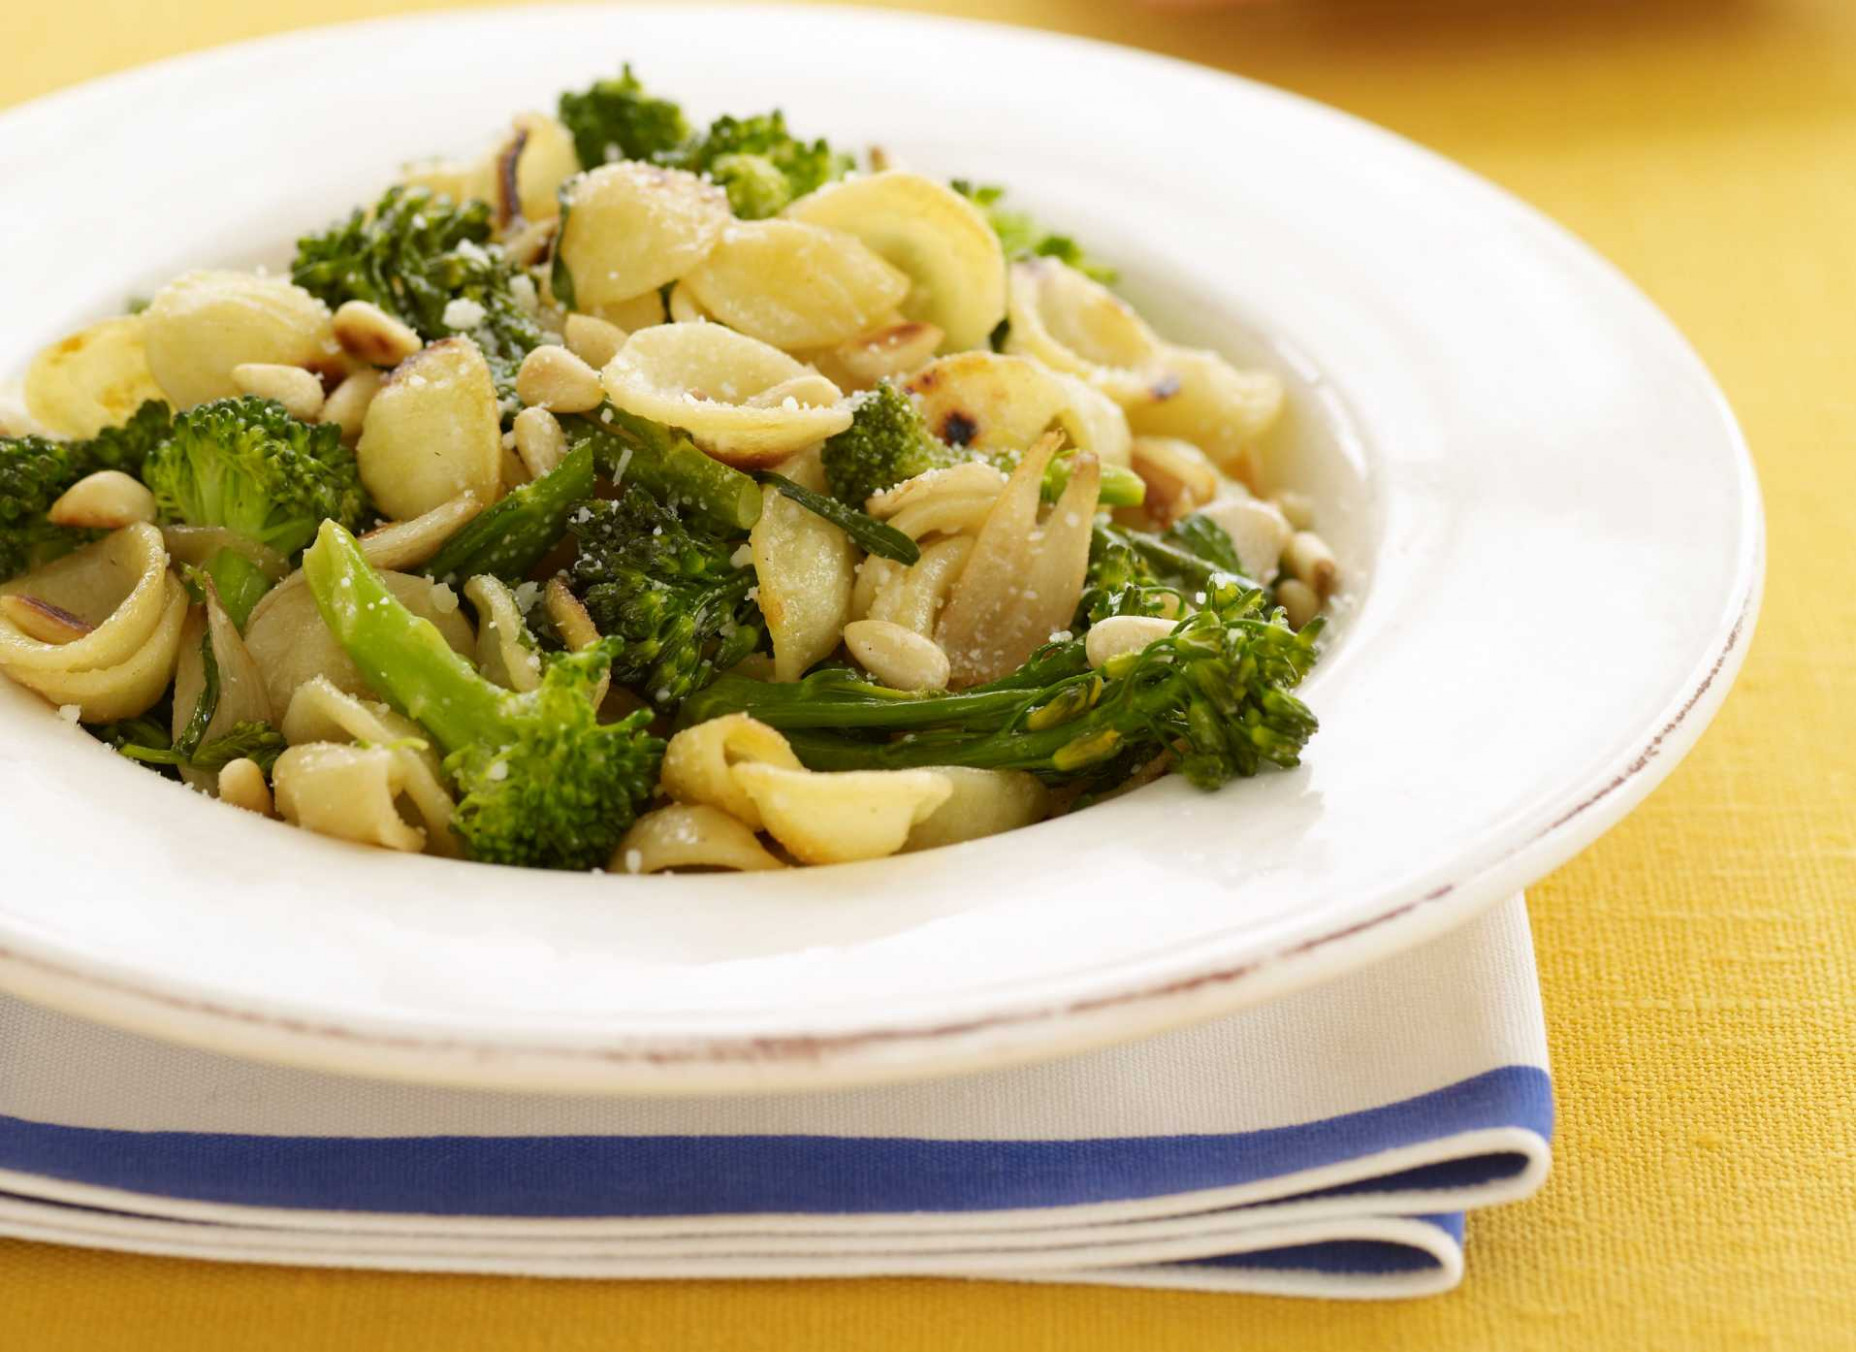 The Best Healthy Vegetarian Pasta Recipes - Healthy Pasta Recipes Vegetarian